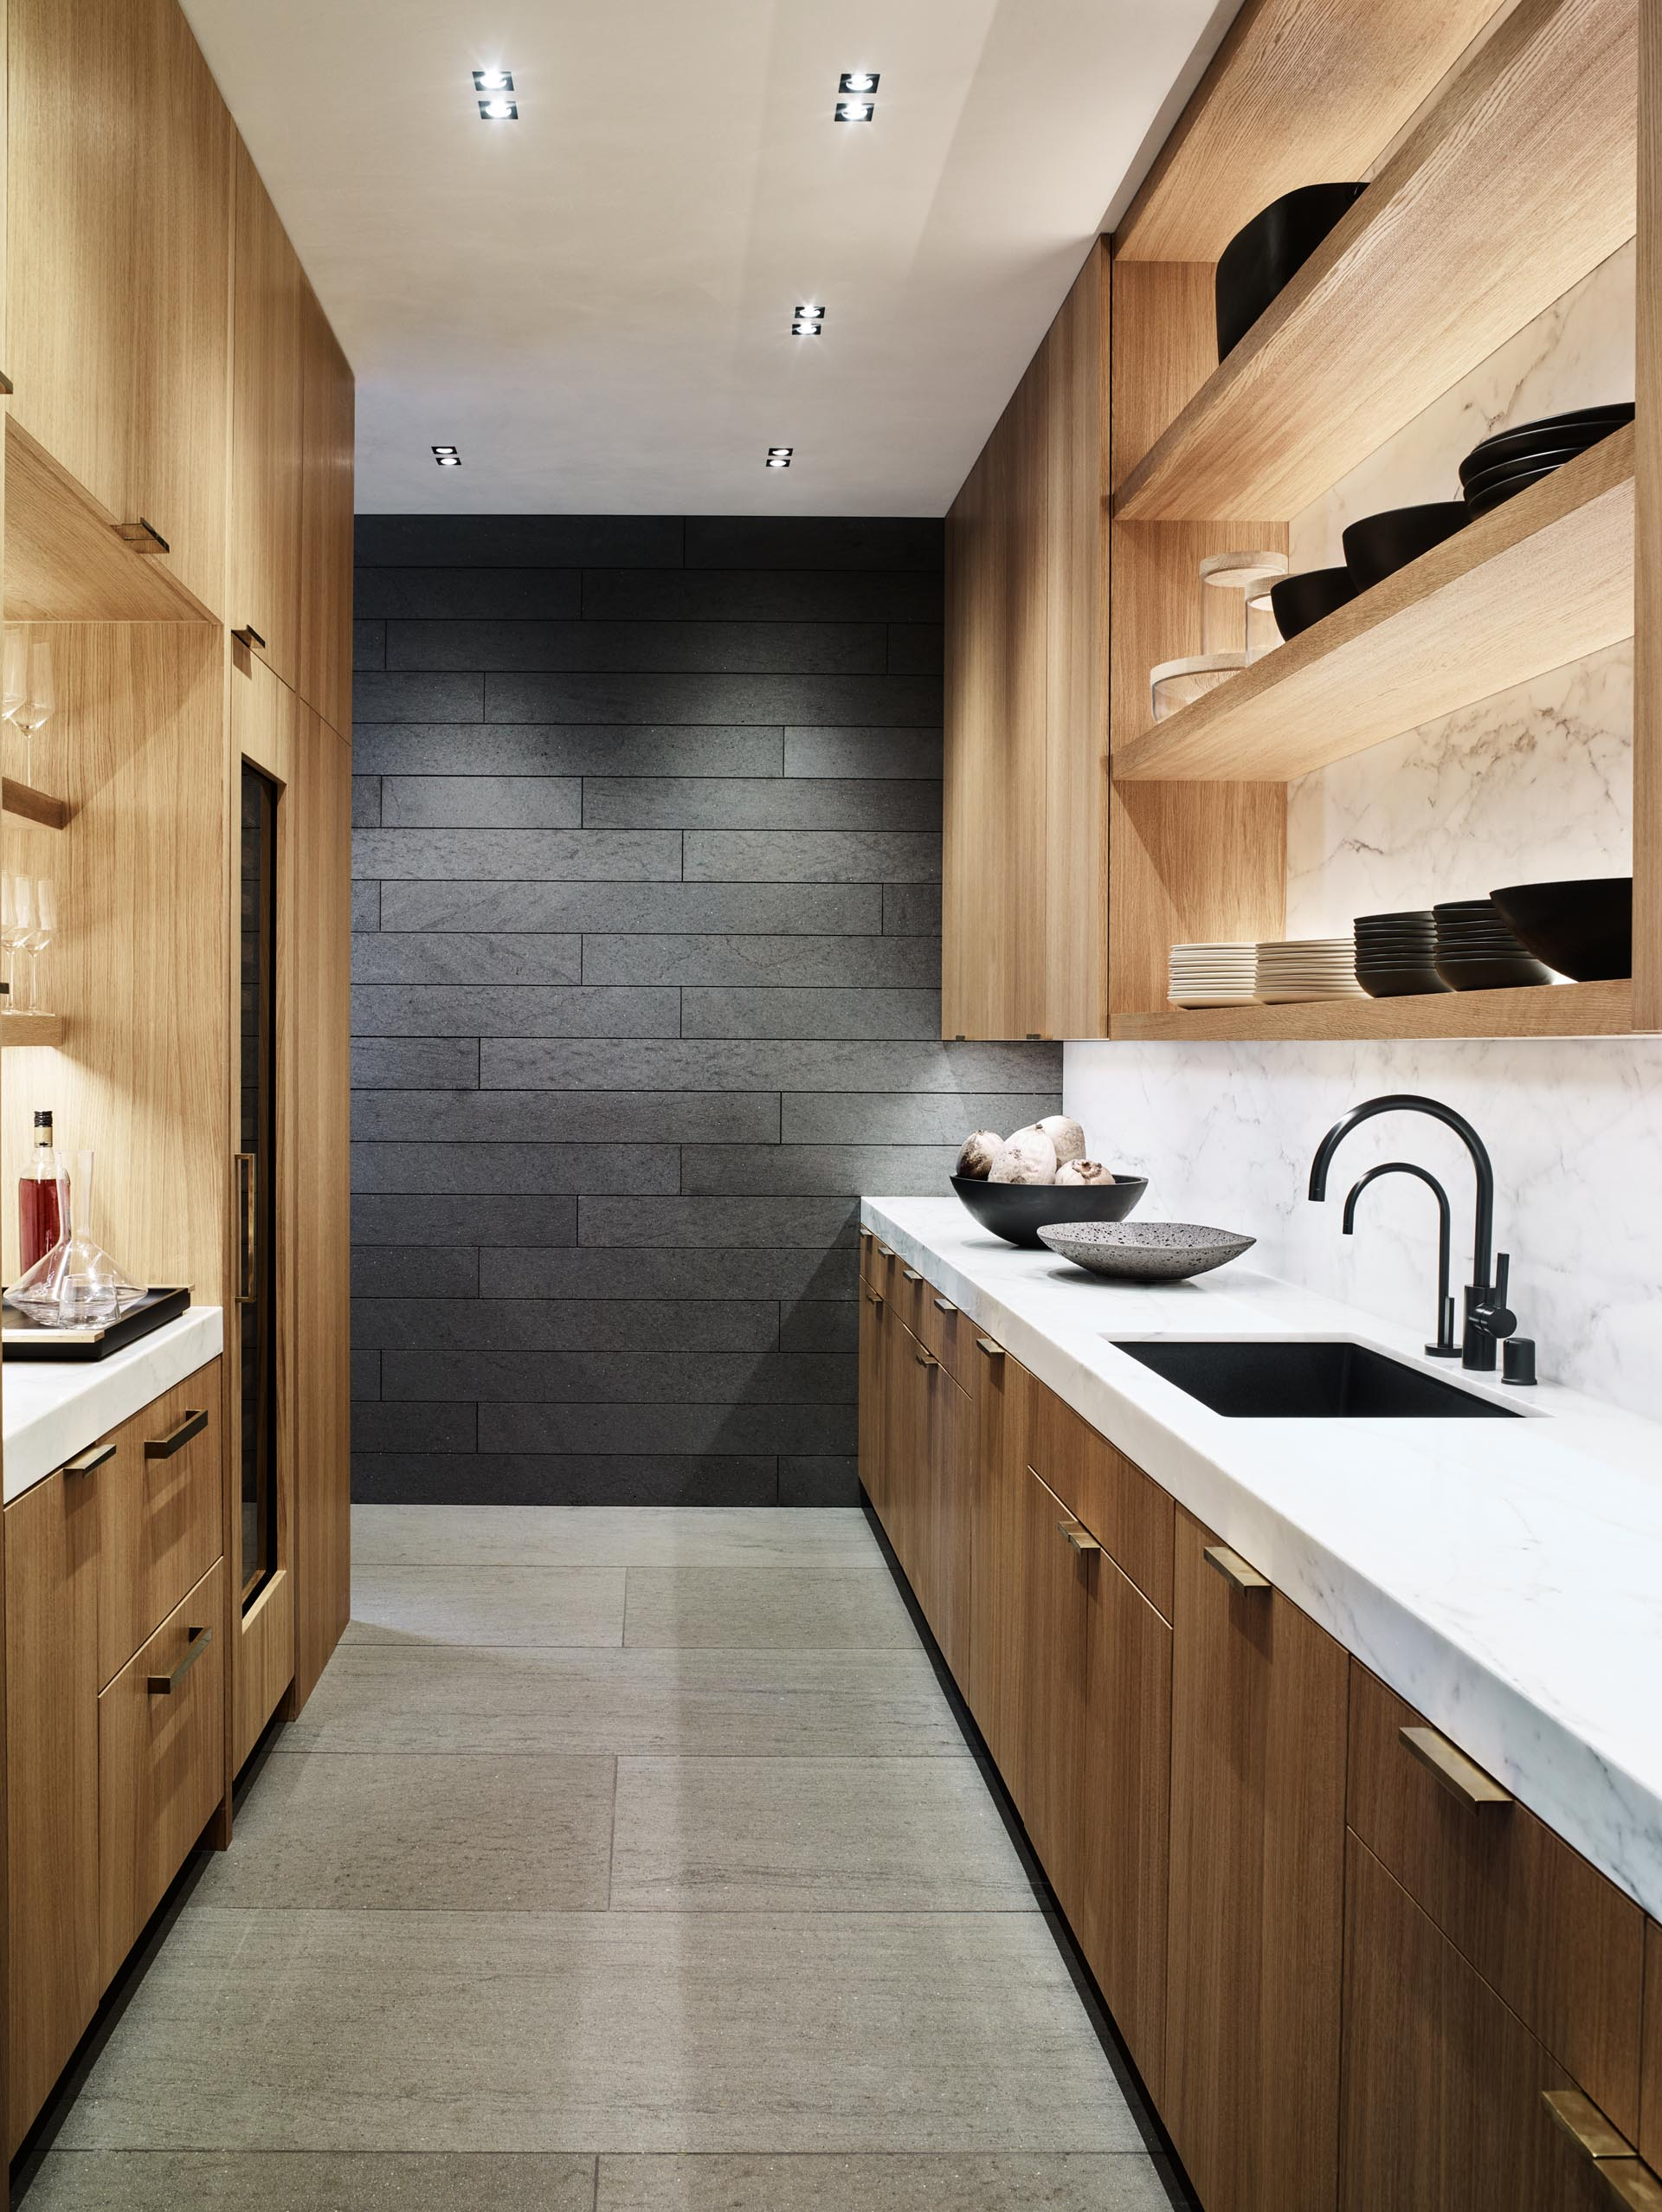 A walk-through pantry with wood cabinets and open shelving.